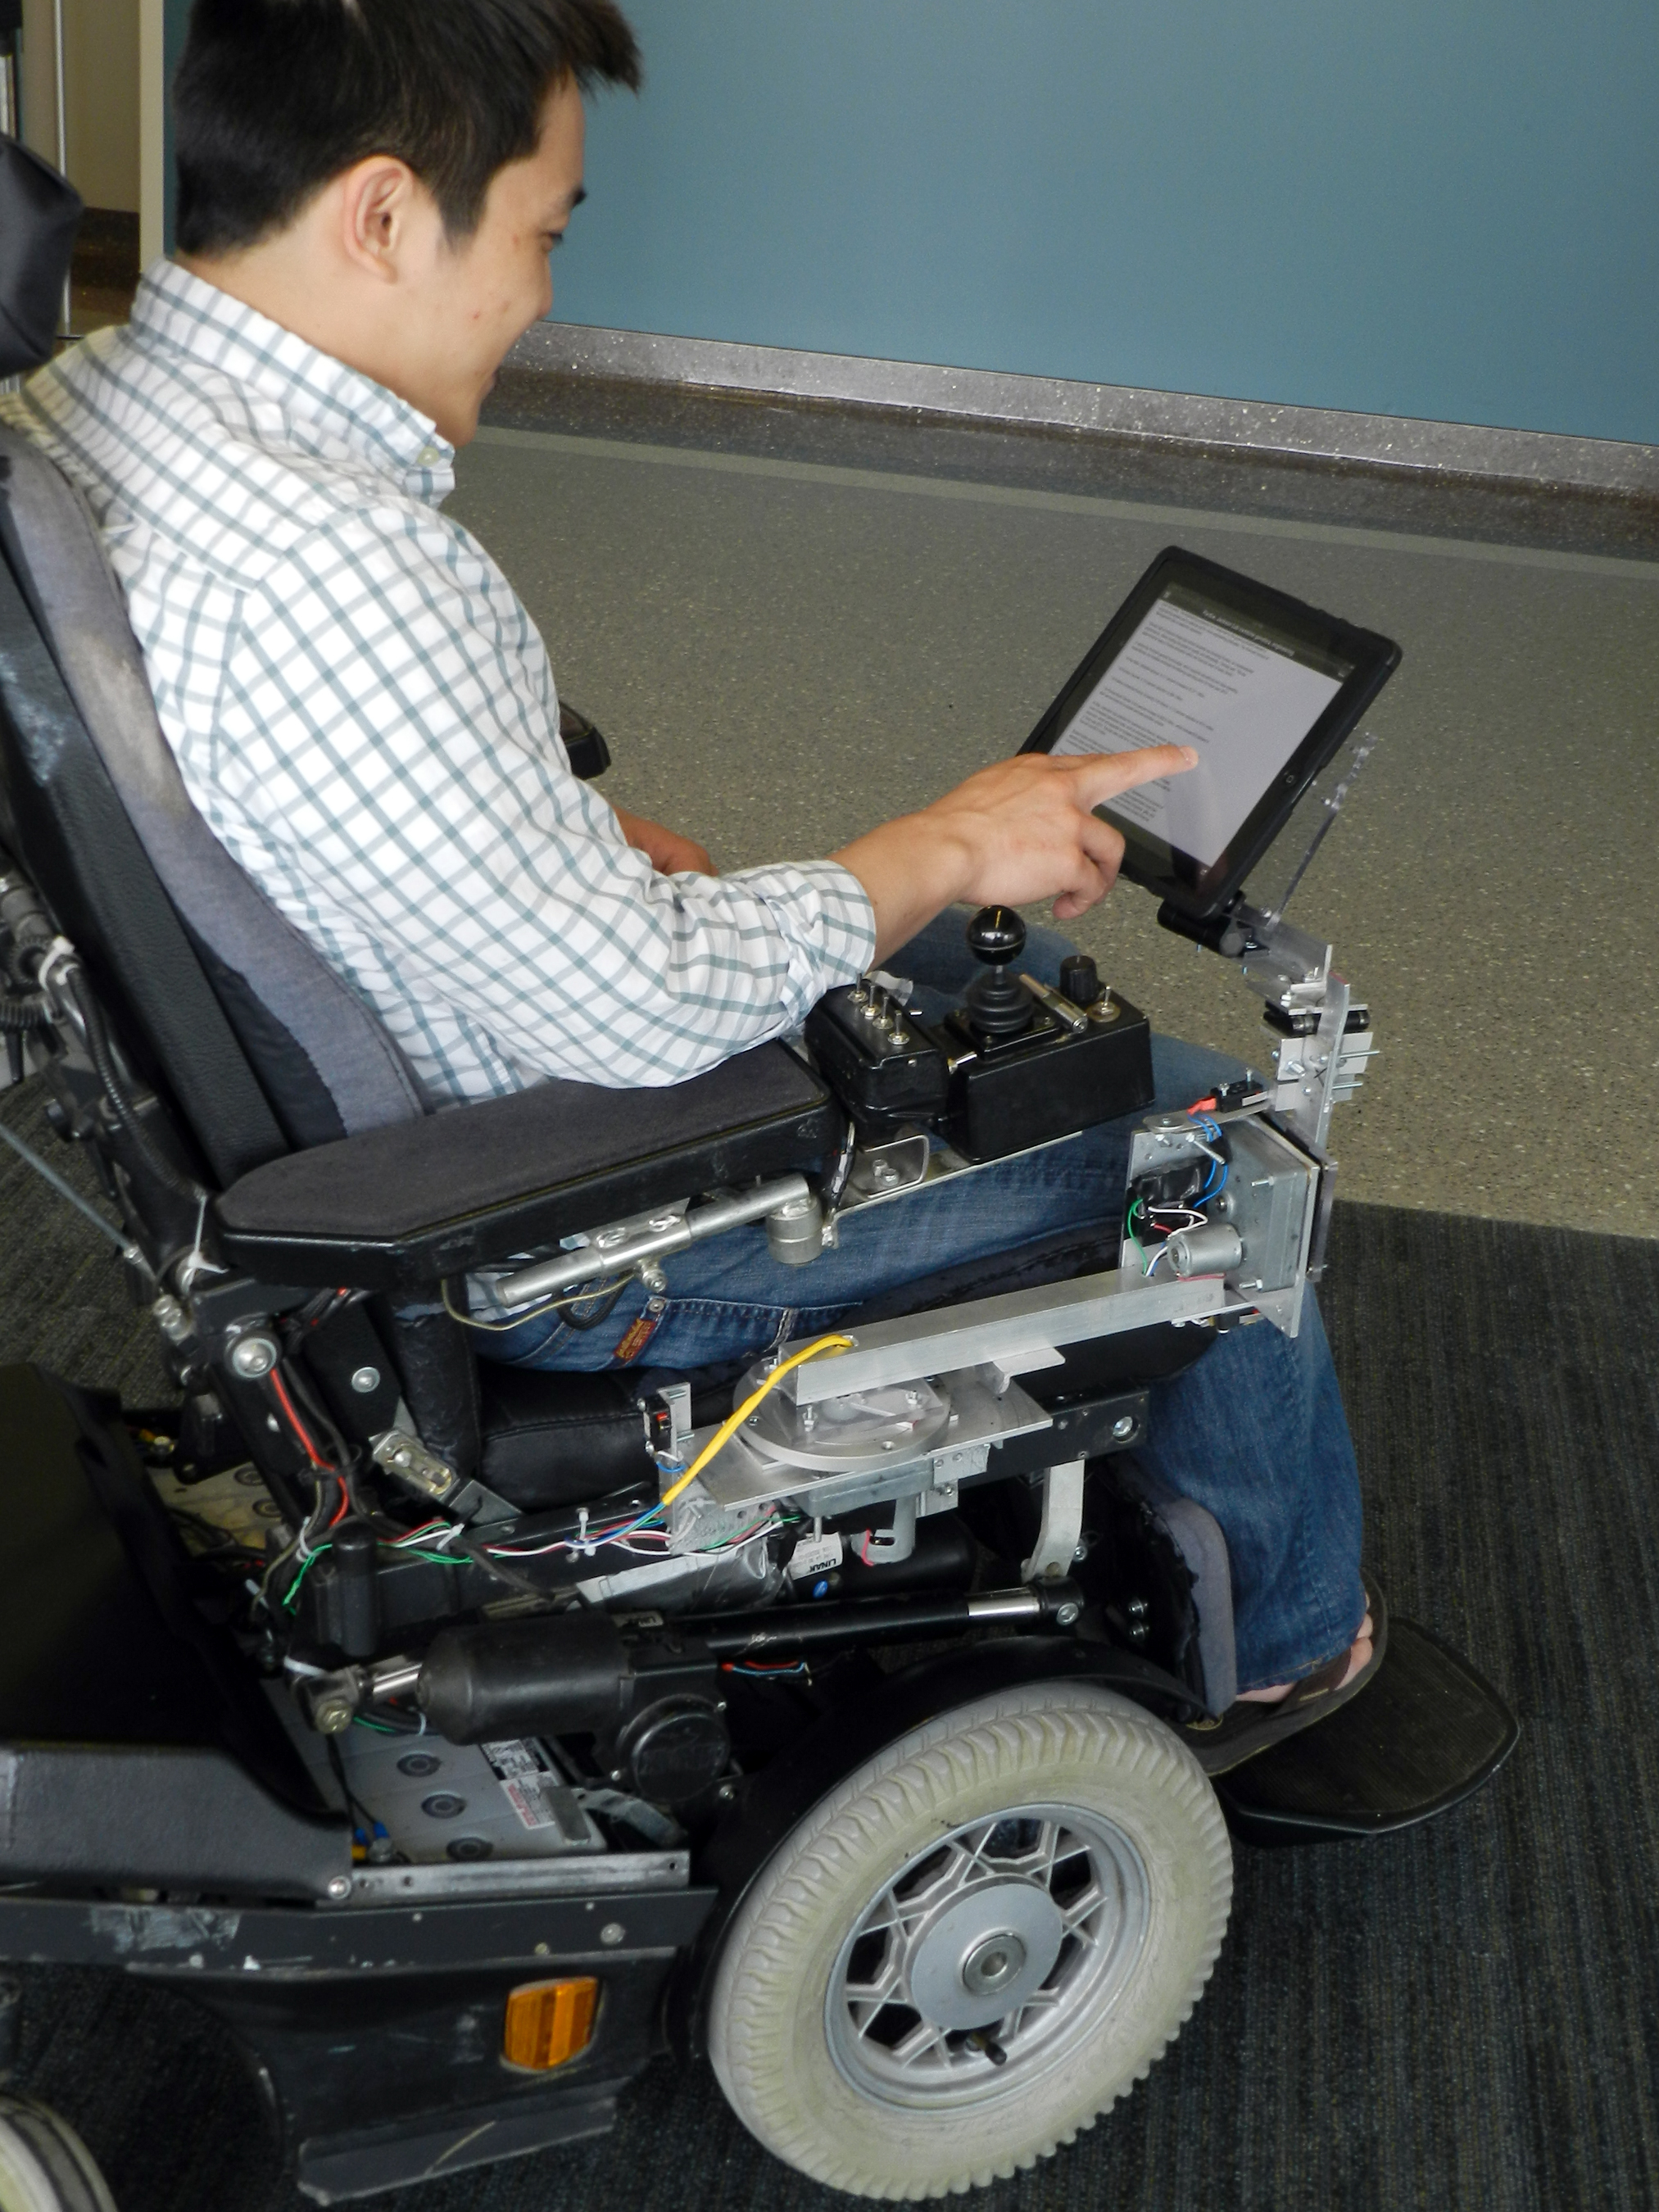 Disability & Mobility Resources